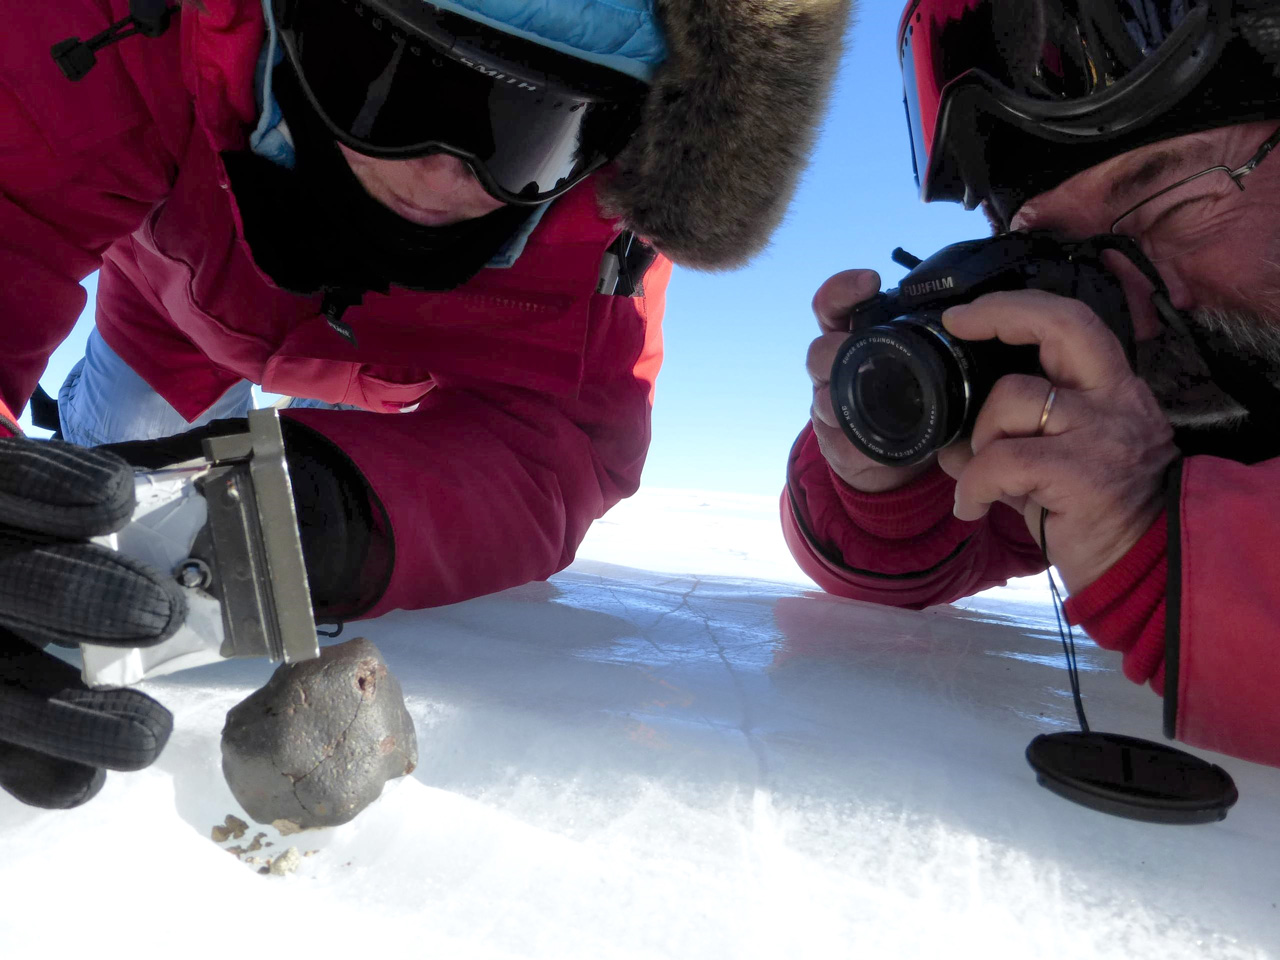 Two scientists examining a meteorite on snow-covered ground.